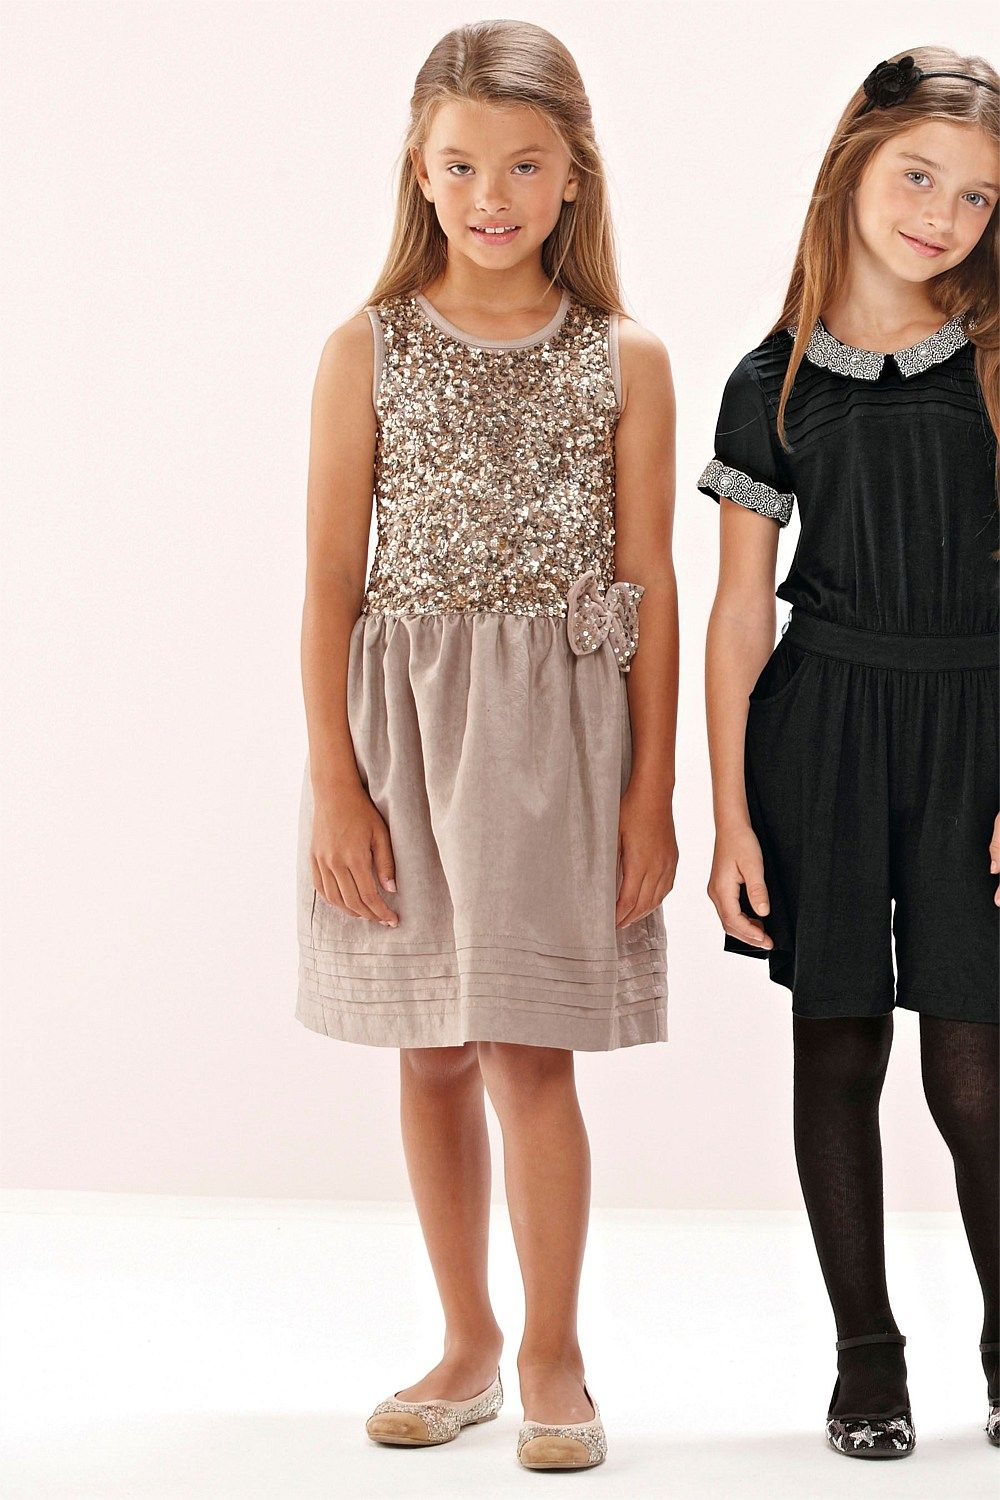 20d2a09c6 Kid's Clothing - Kidswear and Clothes for Children - Next Sequin Prom Dress  - EziBuy Australia